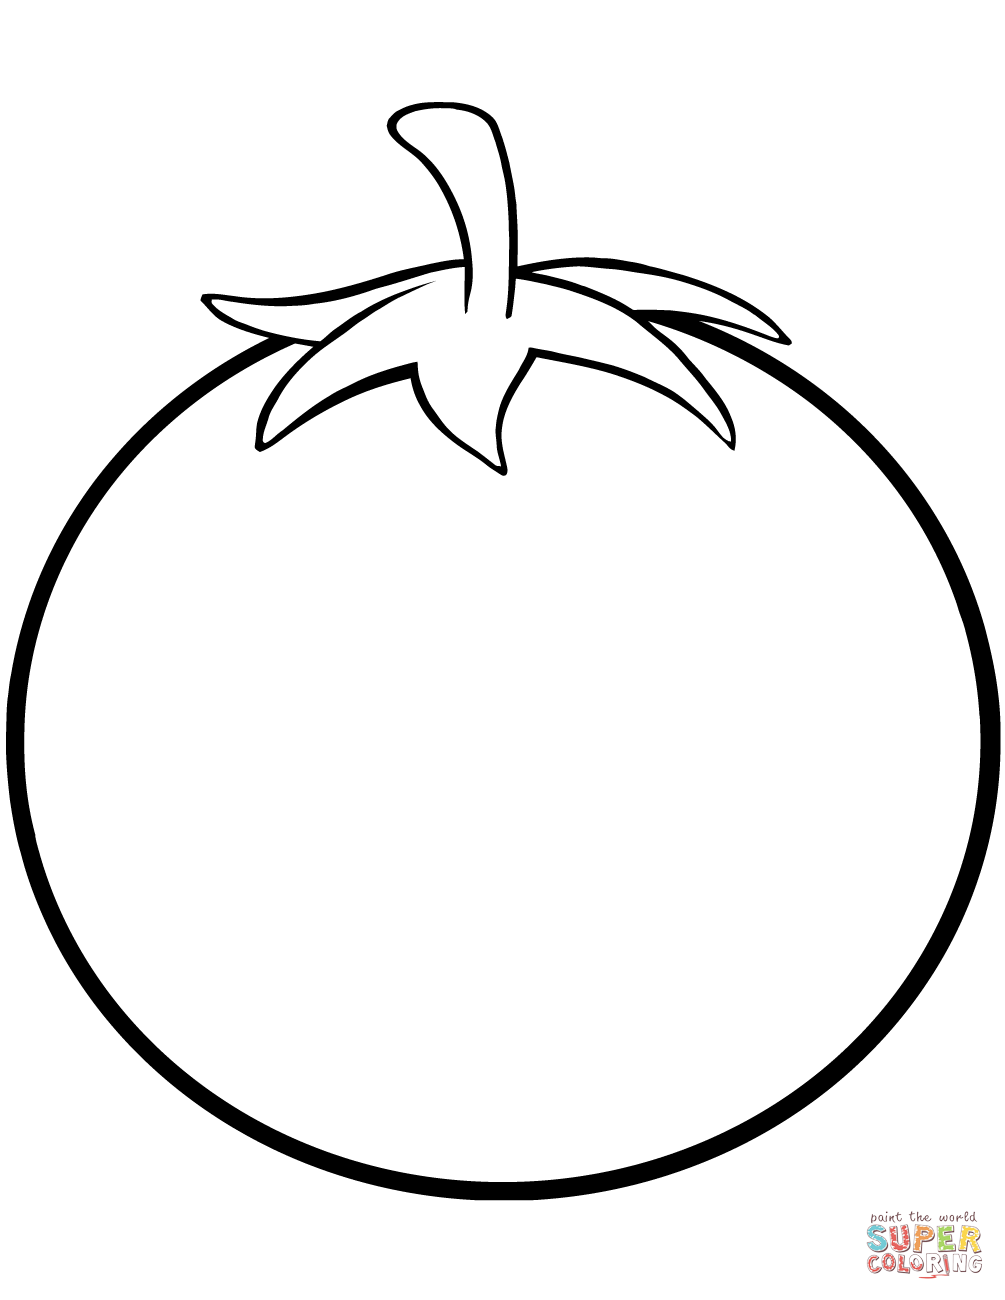 coloring tomato template tomato coloring pages download and print tomato coloring coloring tomato template